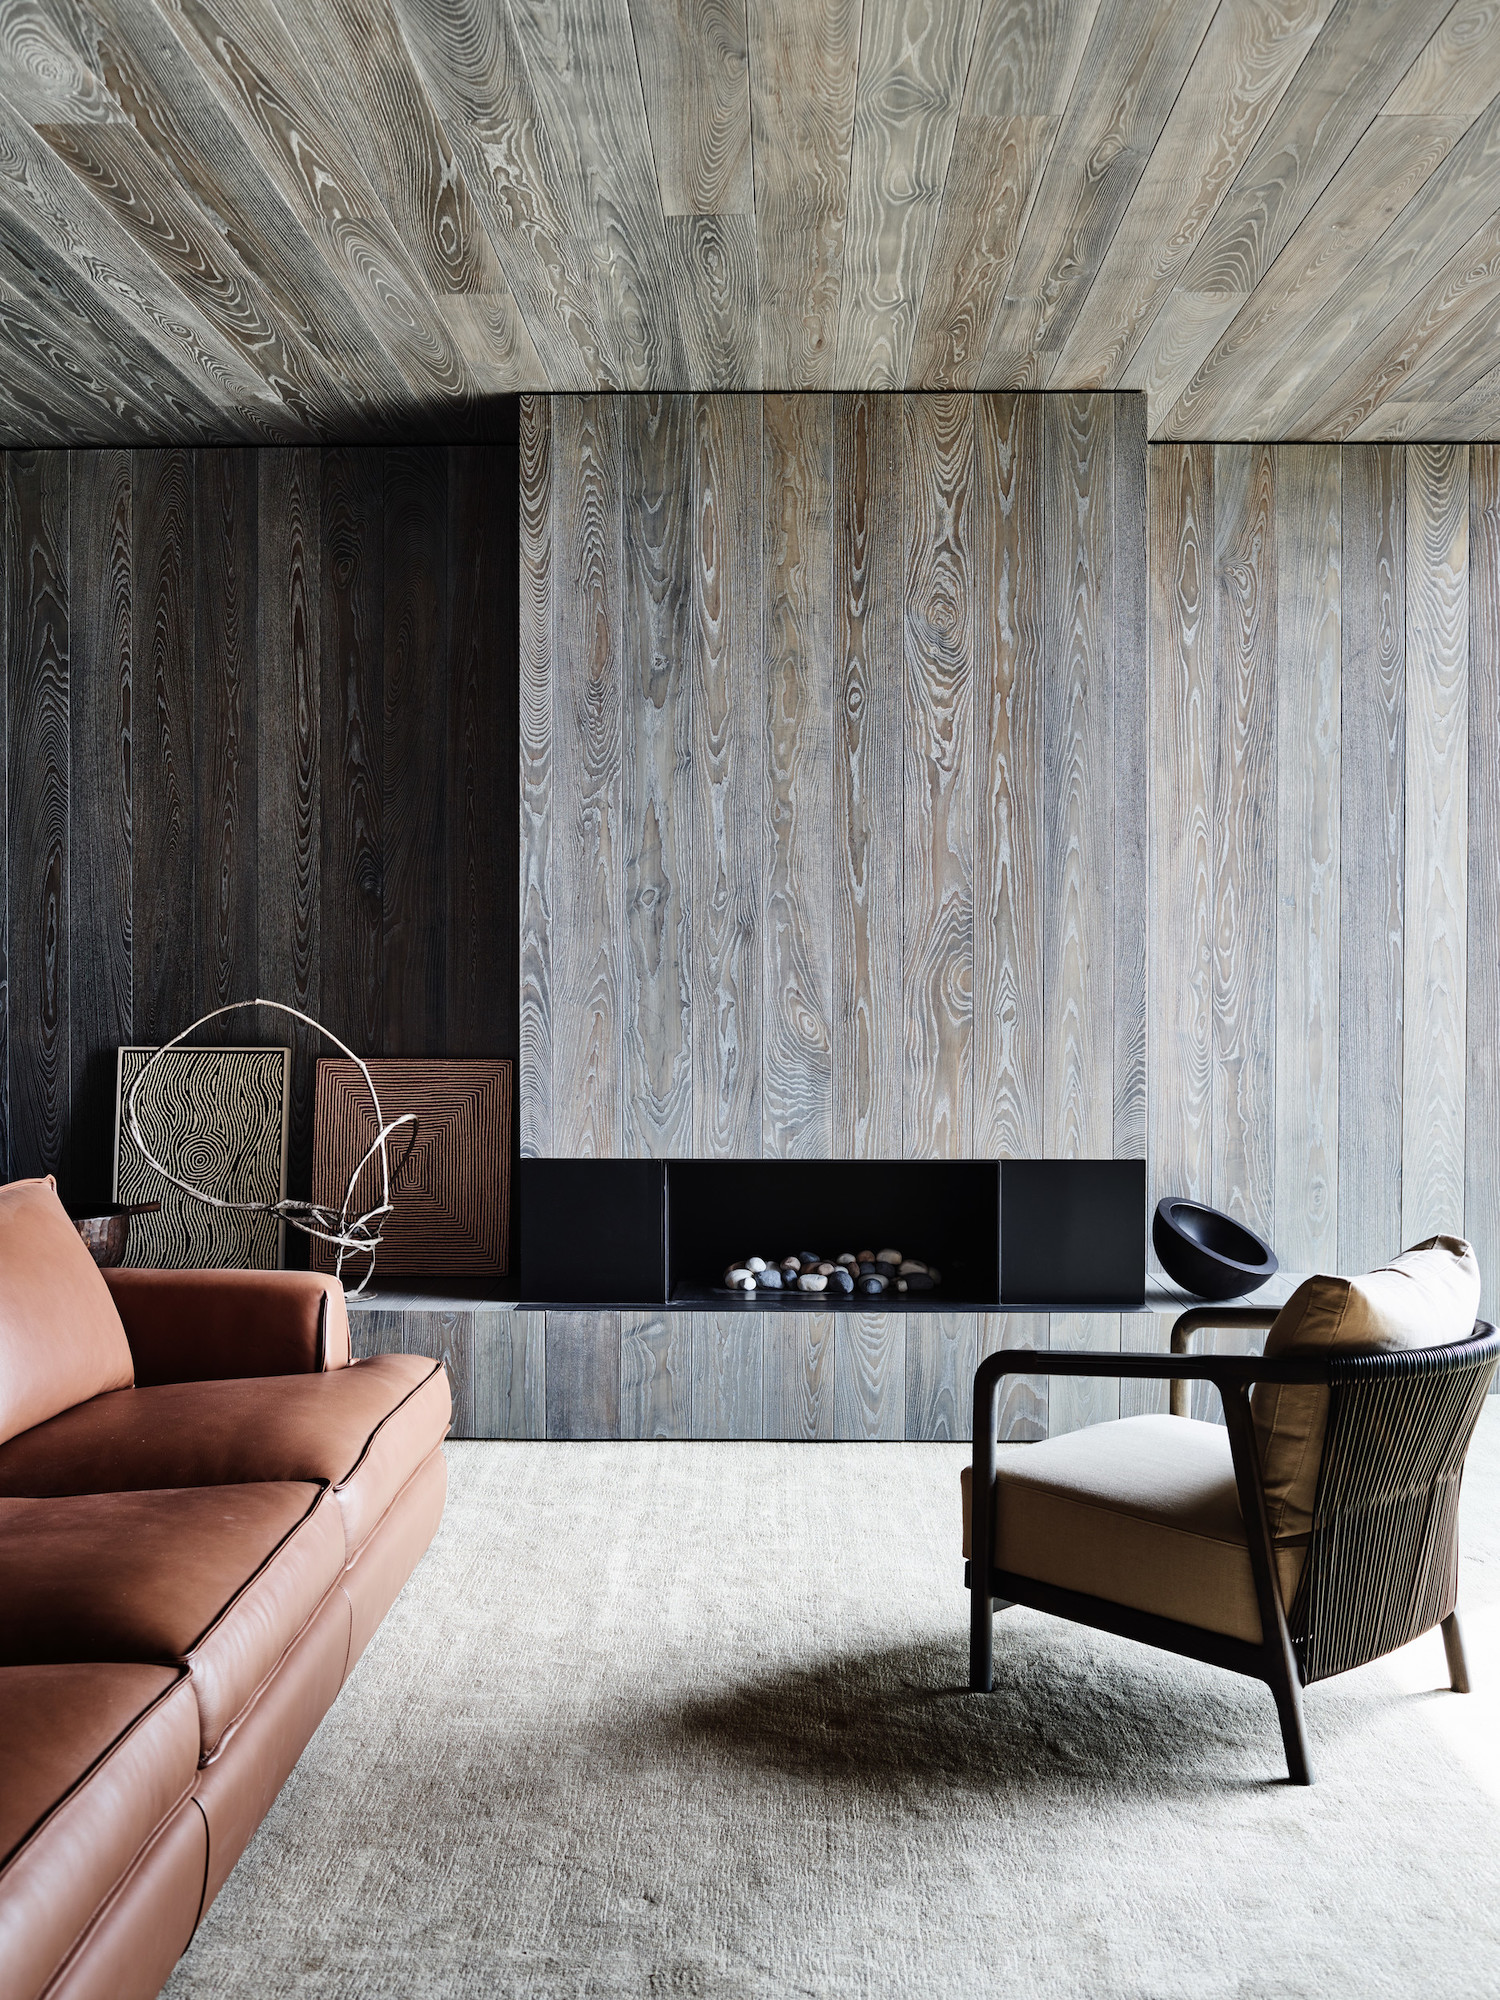 est living aida awards 2020 residential design great ocean road rob mills architecture interiors 1